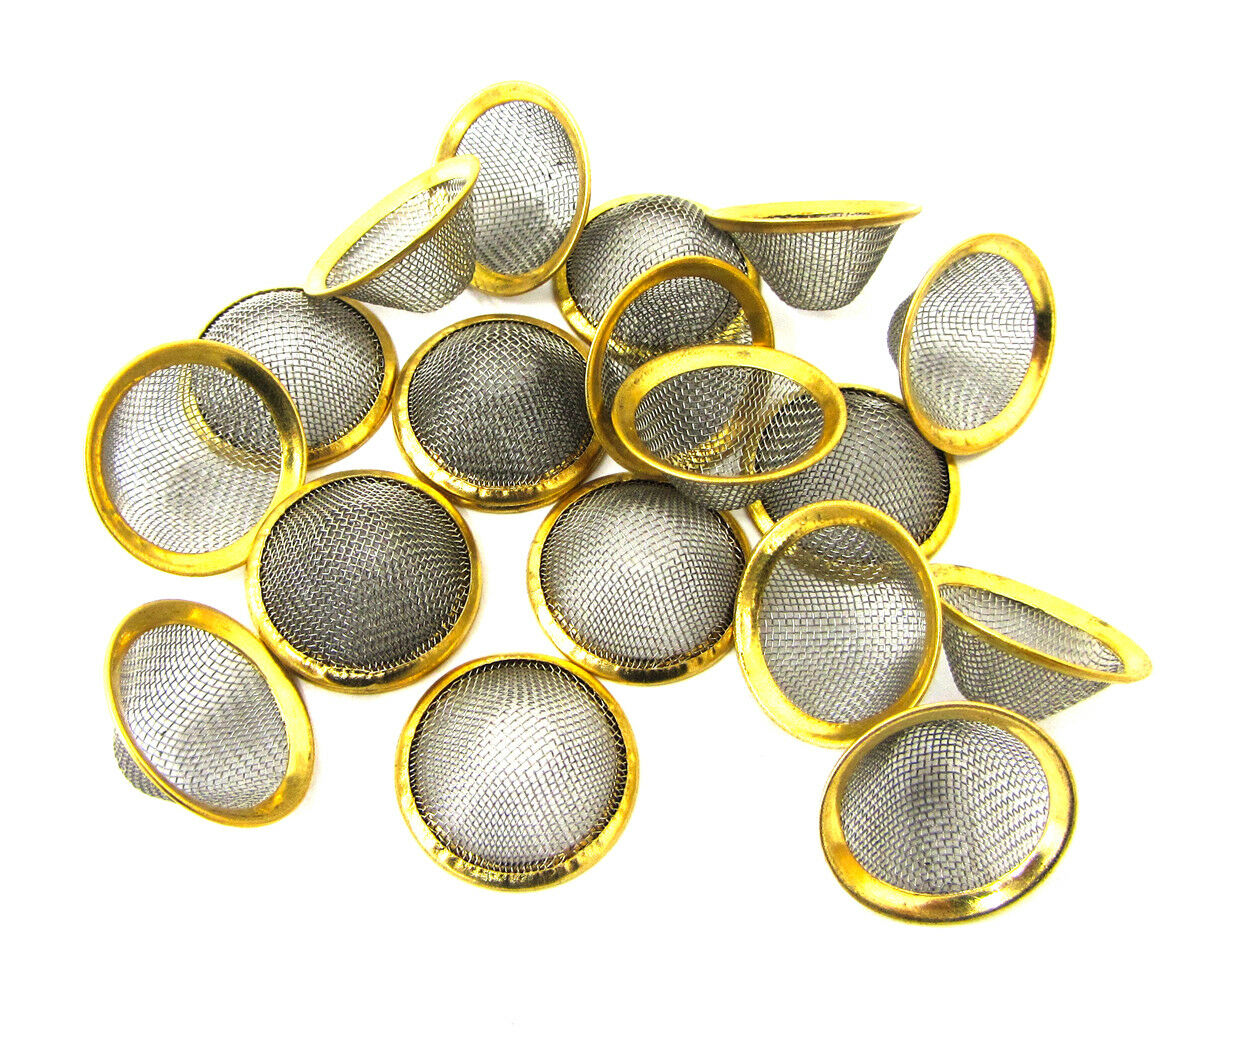 1 of 3 See More  sc 1 st  PicClick & 17MM CONICAL BOWL Gauzes Smoking Pipes Filter Screens Metal Brass 5 ...